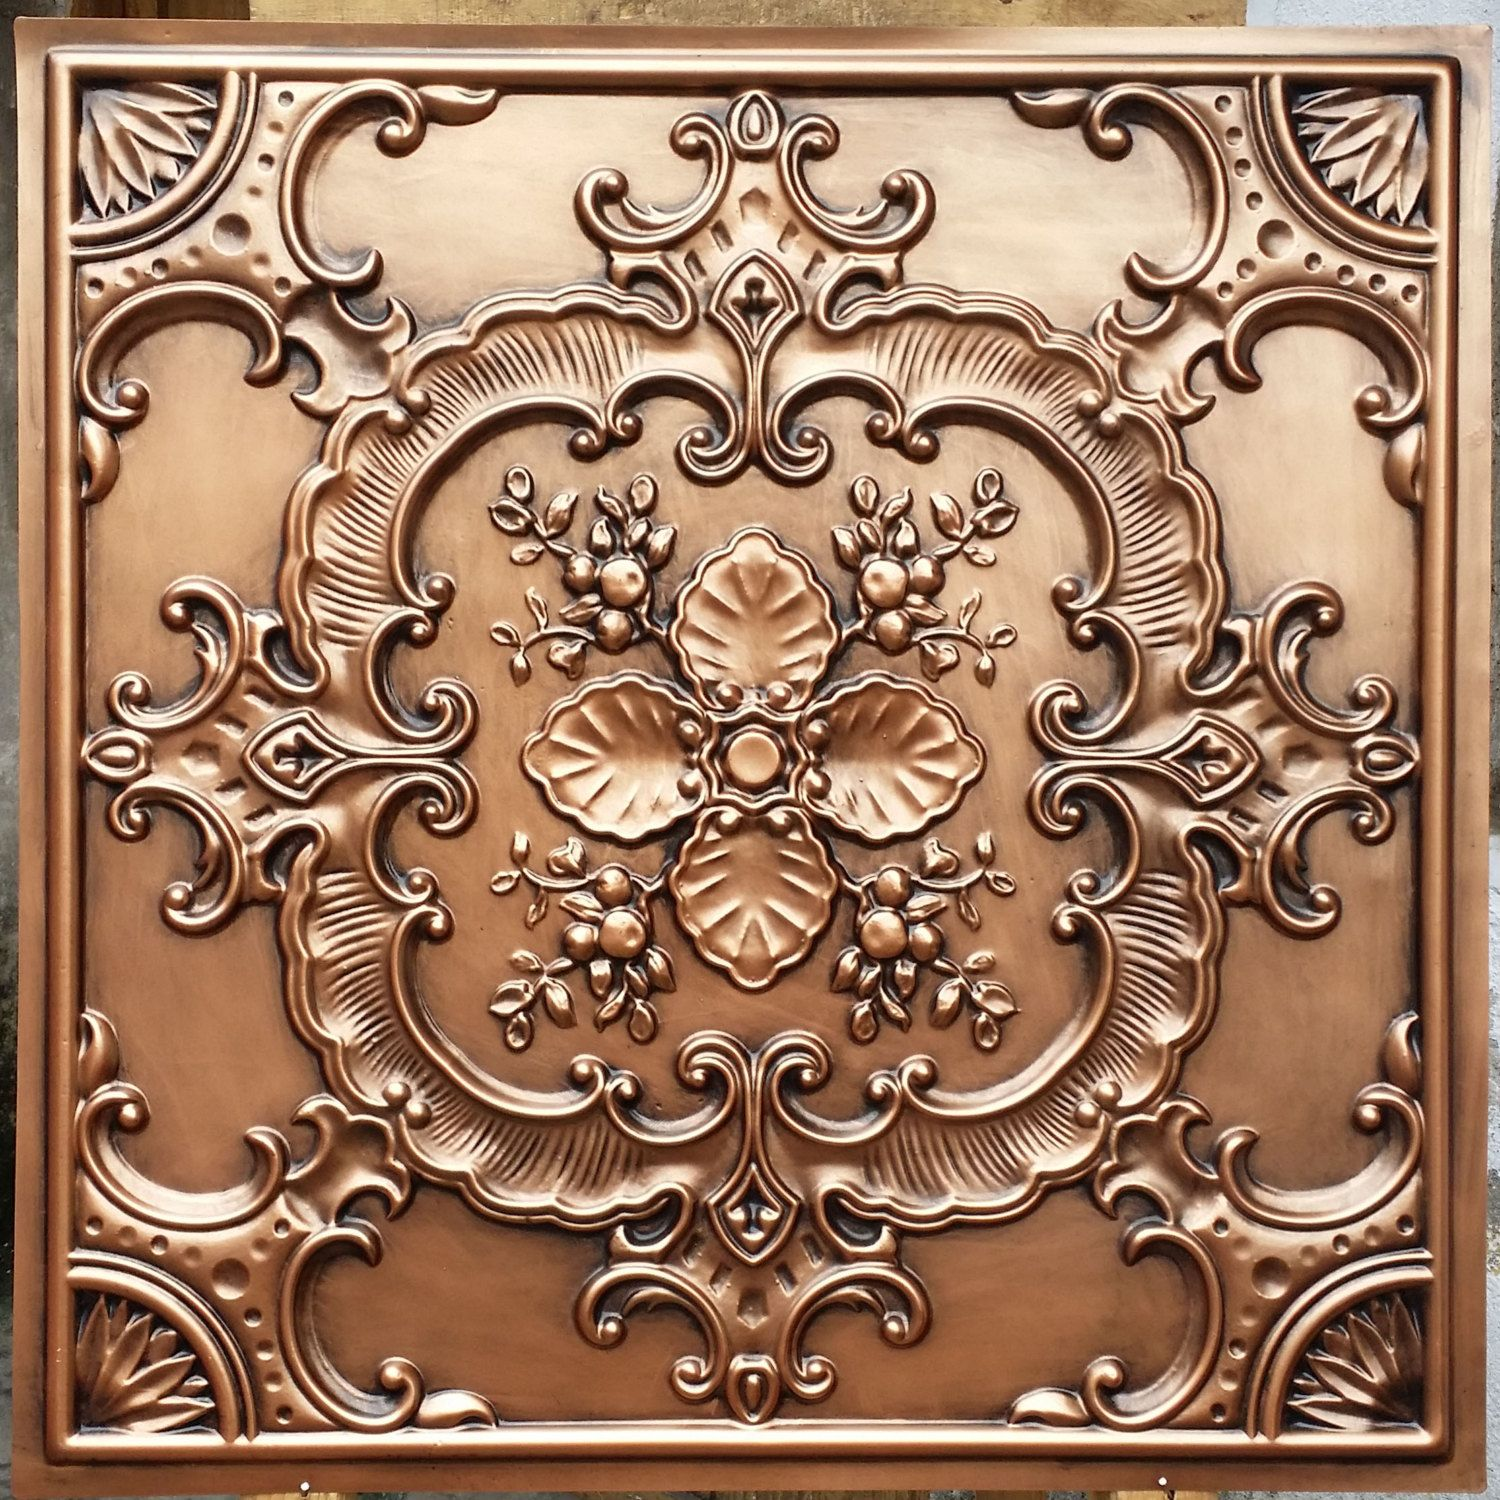 Pl19 faux tin antique copper ceiling tiles 3d embossed photography pl19 faux tin antique copper ceiling tiles 3d embossed photography background panels boards 10tileslot dailygadgetfo Image collections